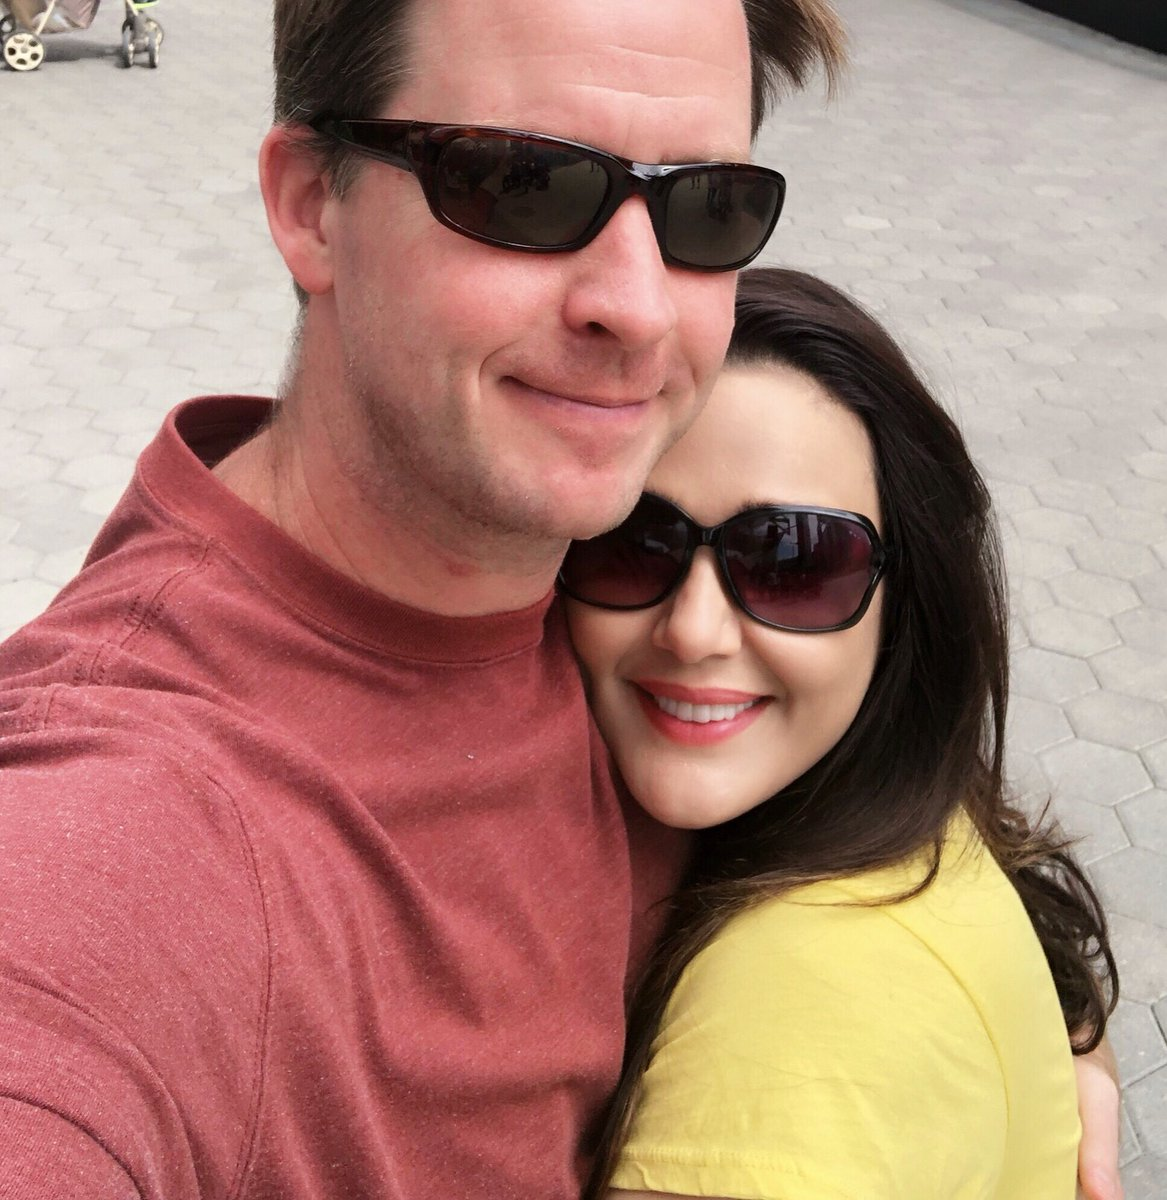 Loving every moment of being in #Newyork with my better half ❤️ #Hubby #mysunshine  #JaaduKiJhappi #Patiparmeshwar #Happiness #love #Selfie #strikeapose #ting